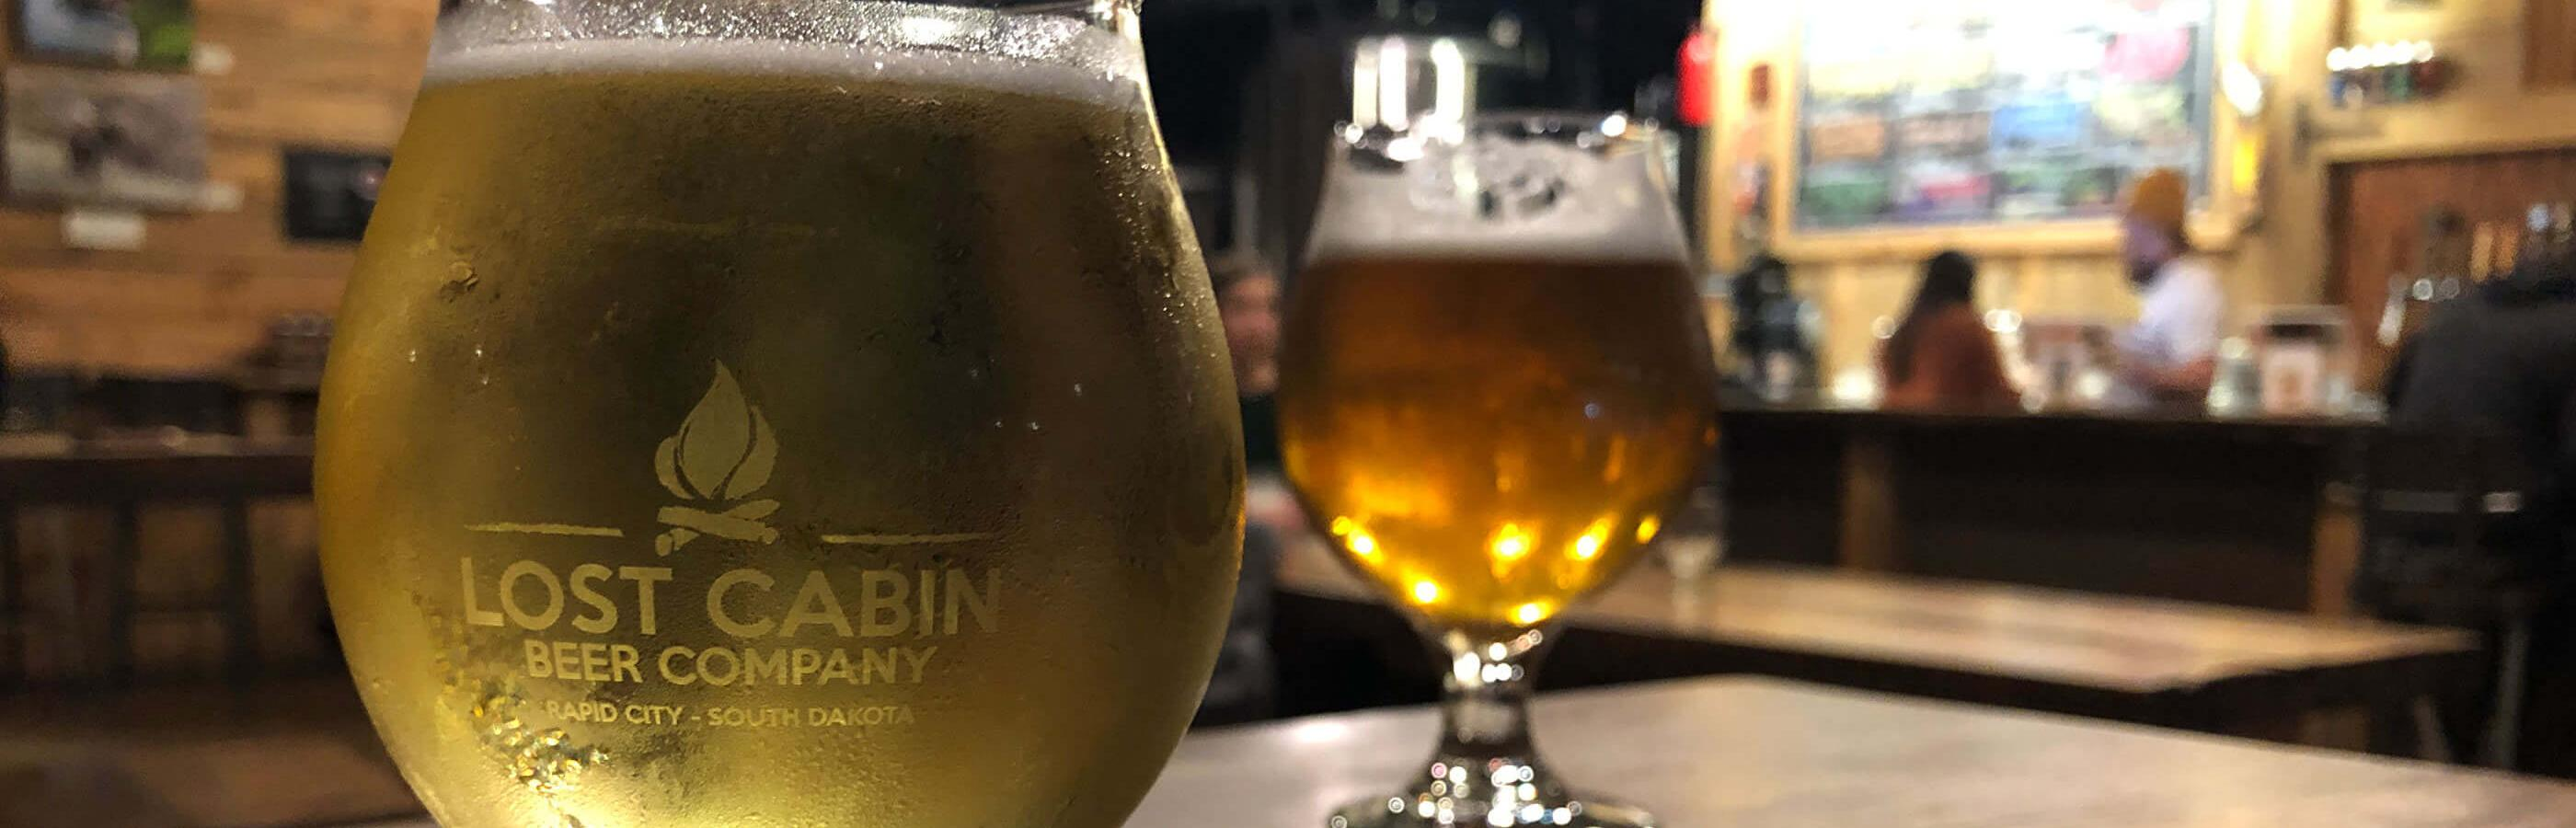 Cold Beers At Rapid City Brewery Lost Cabin Beer Co.